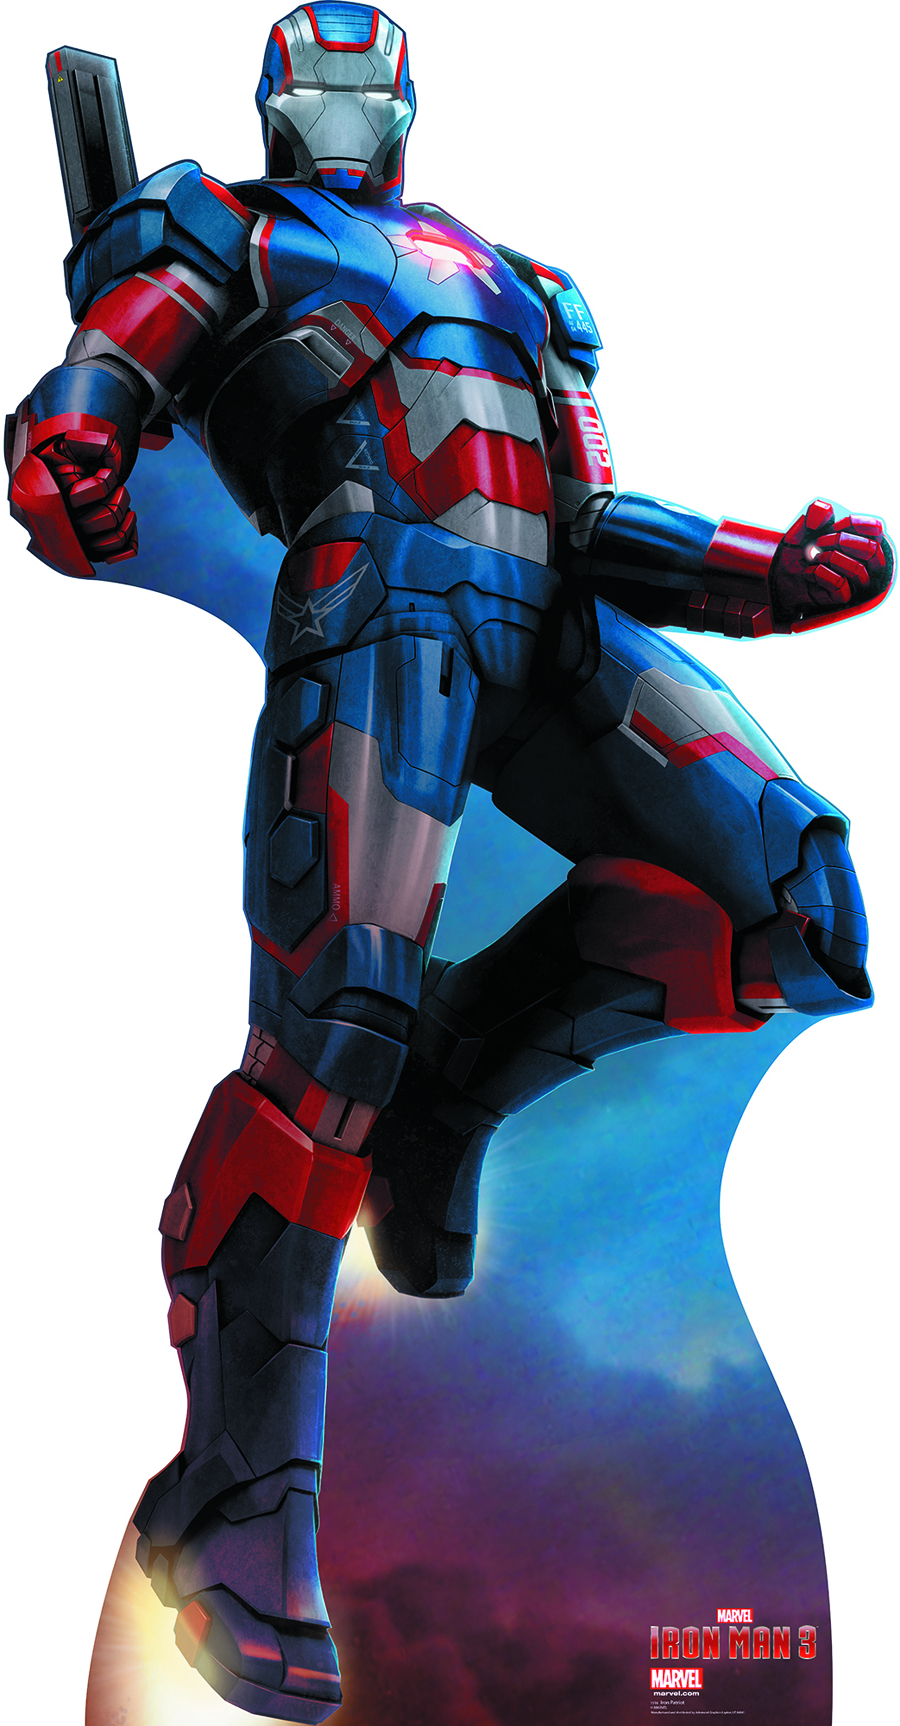 IRON MAN 3 IRON PATRIOT LIFE-SIZE STANDUP